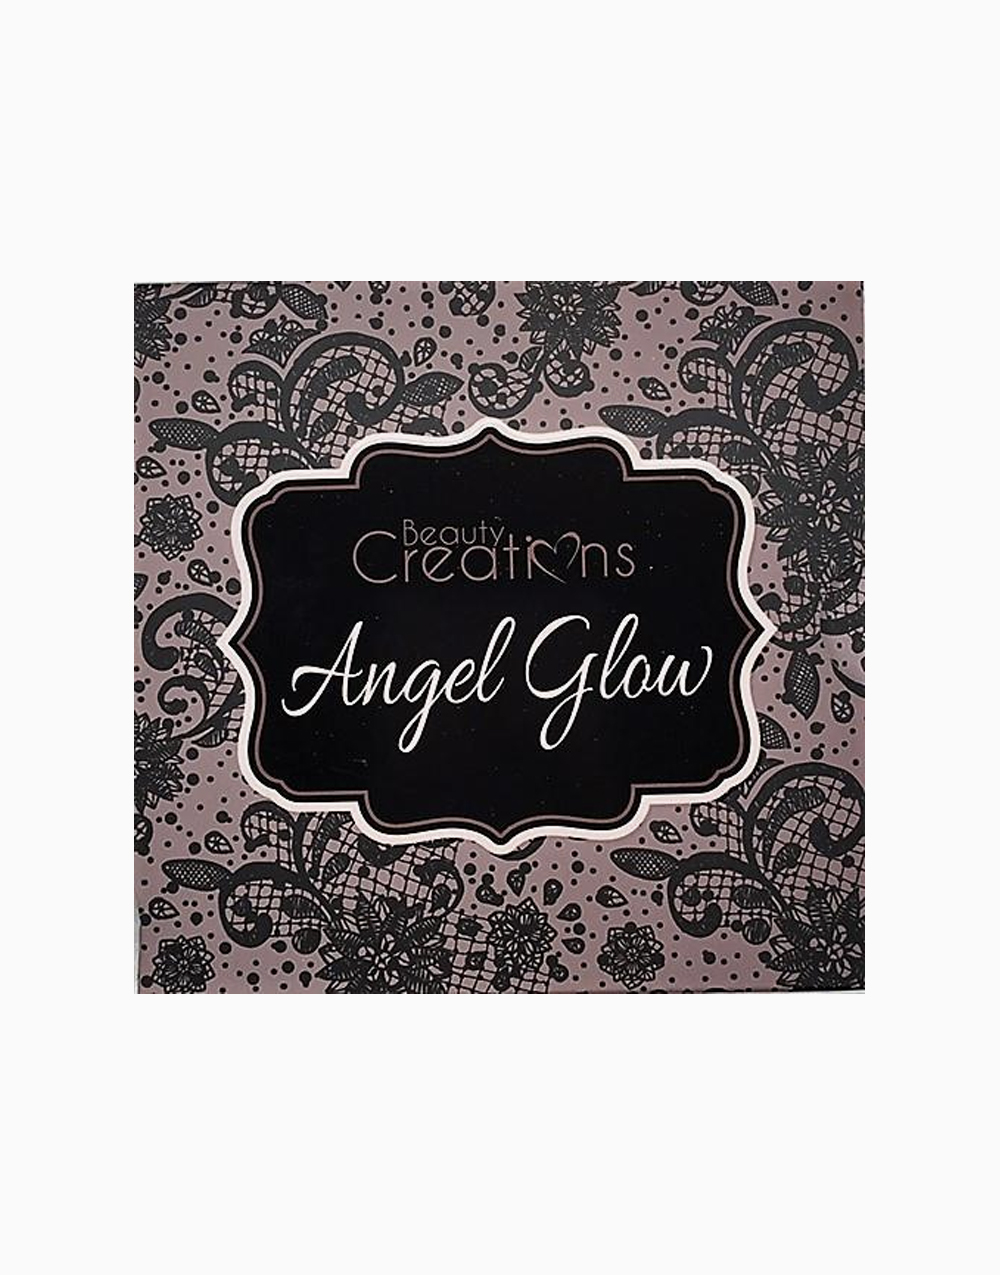 Angel Glow Highlight Palette by Beauty Creations